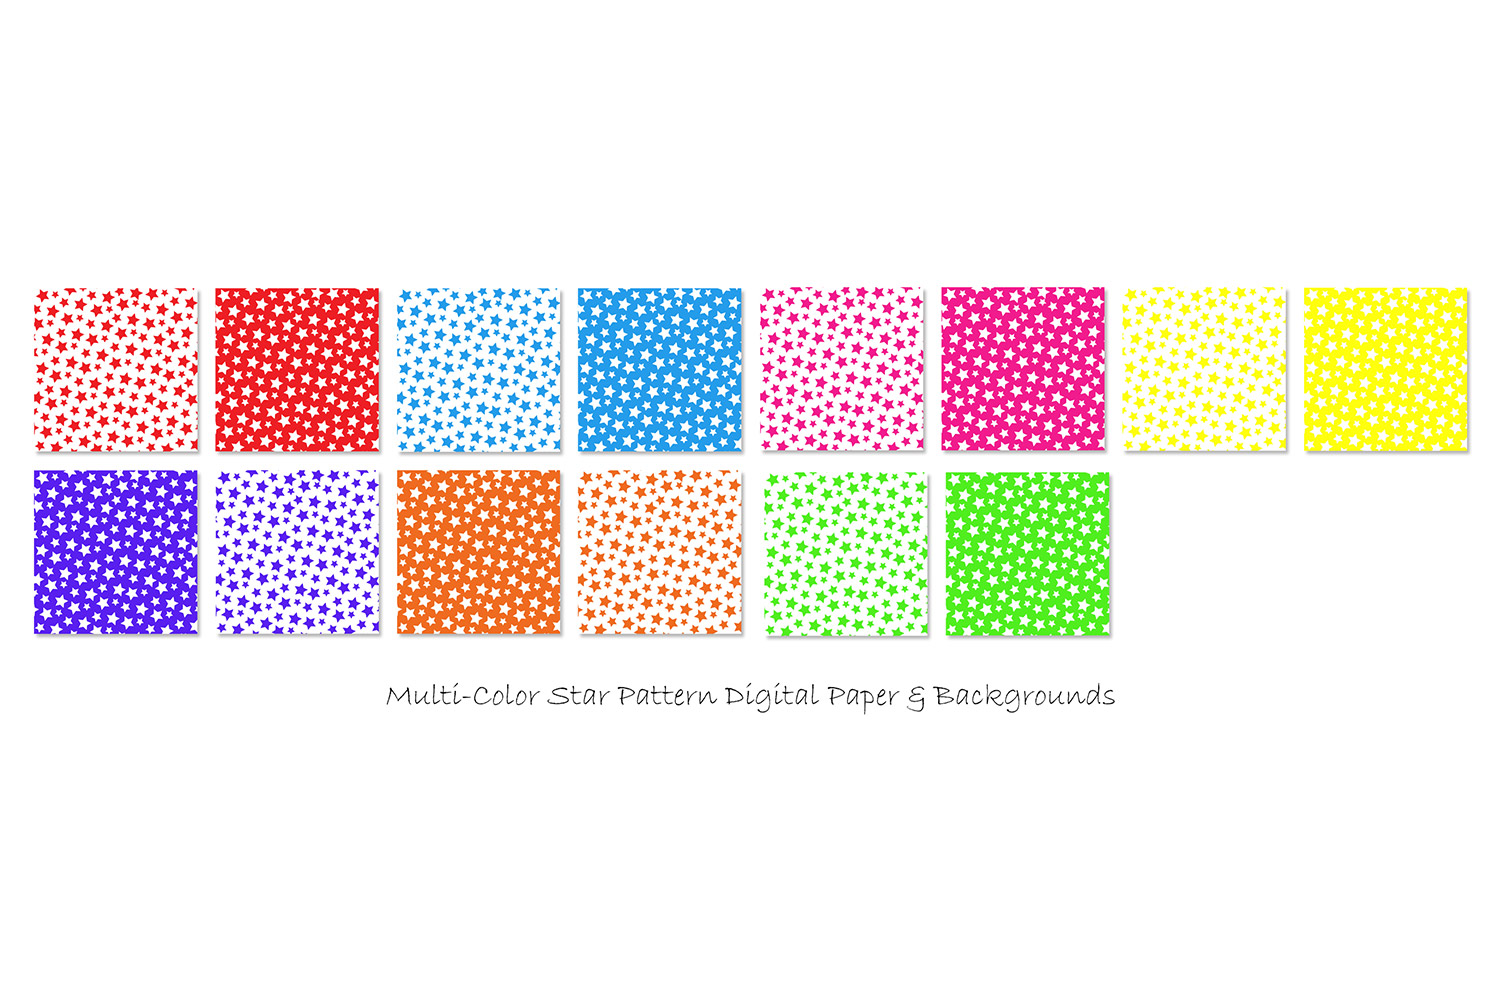 Star Backgrounds in Multi-Color - Star Patterns example image 2